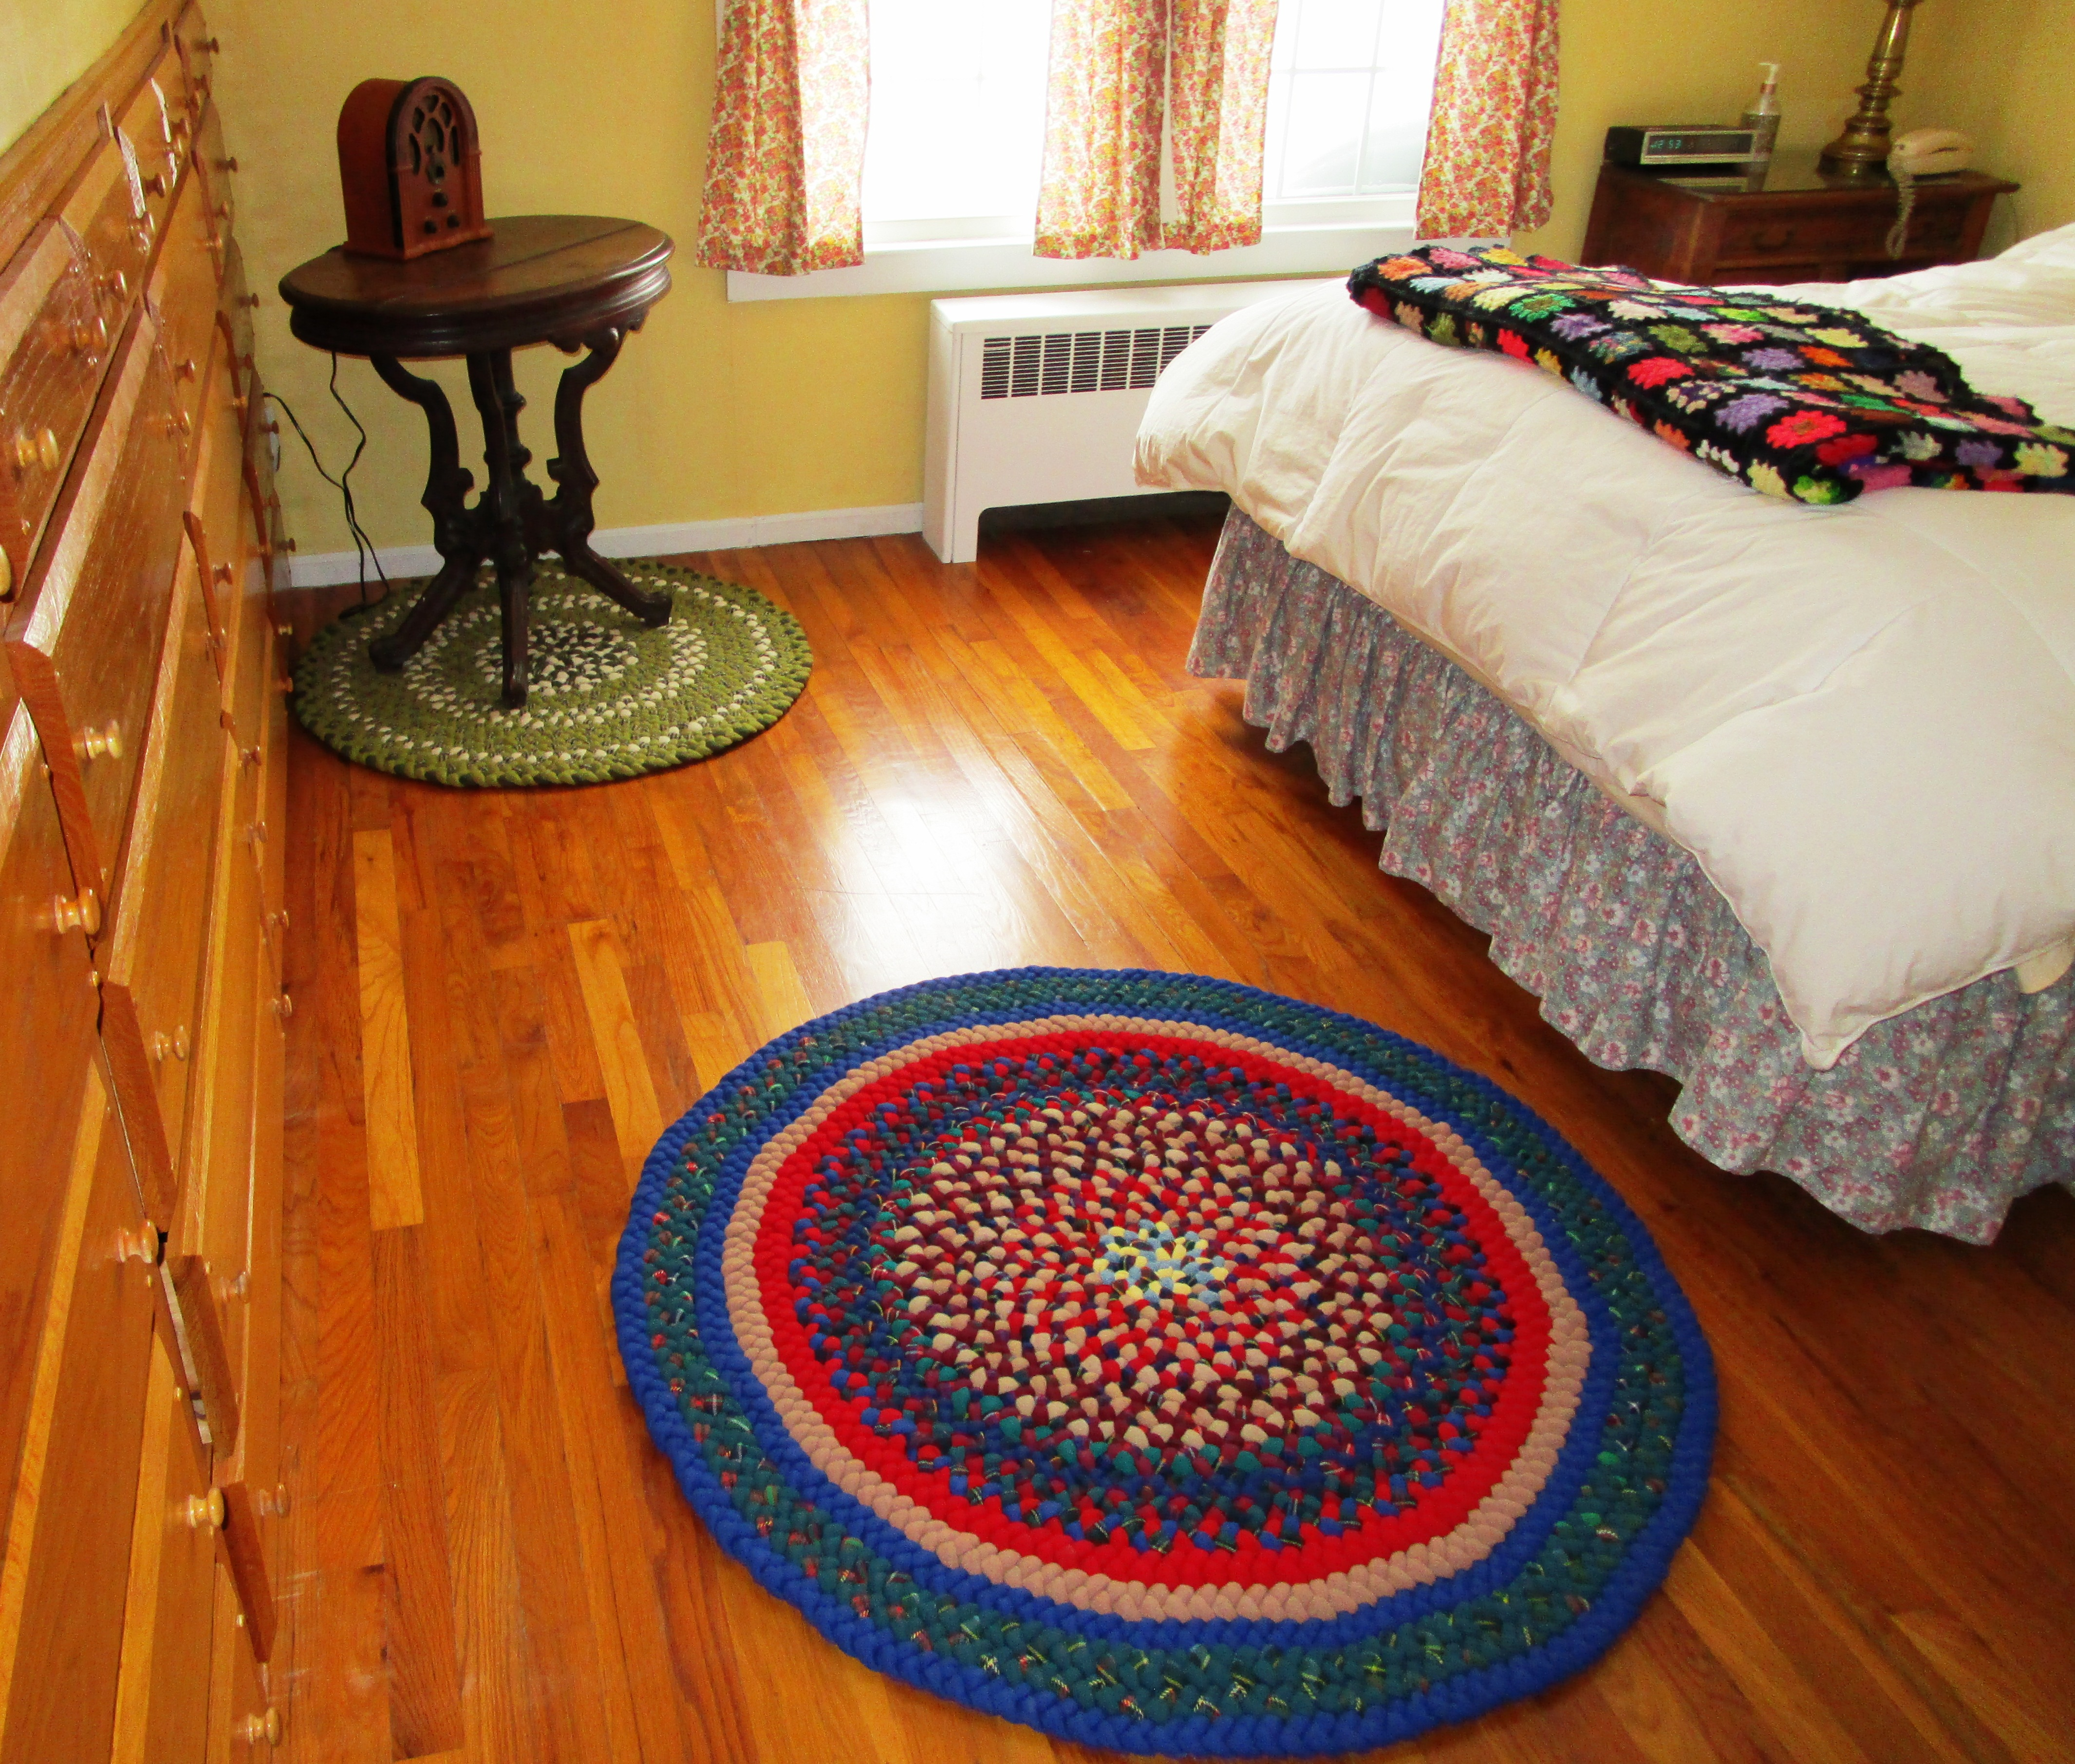 Be Happy For Snow: A Good Way To Clean Rugs!